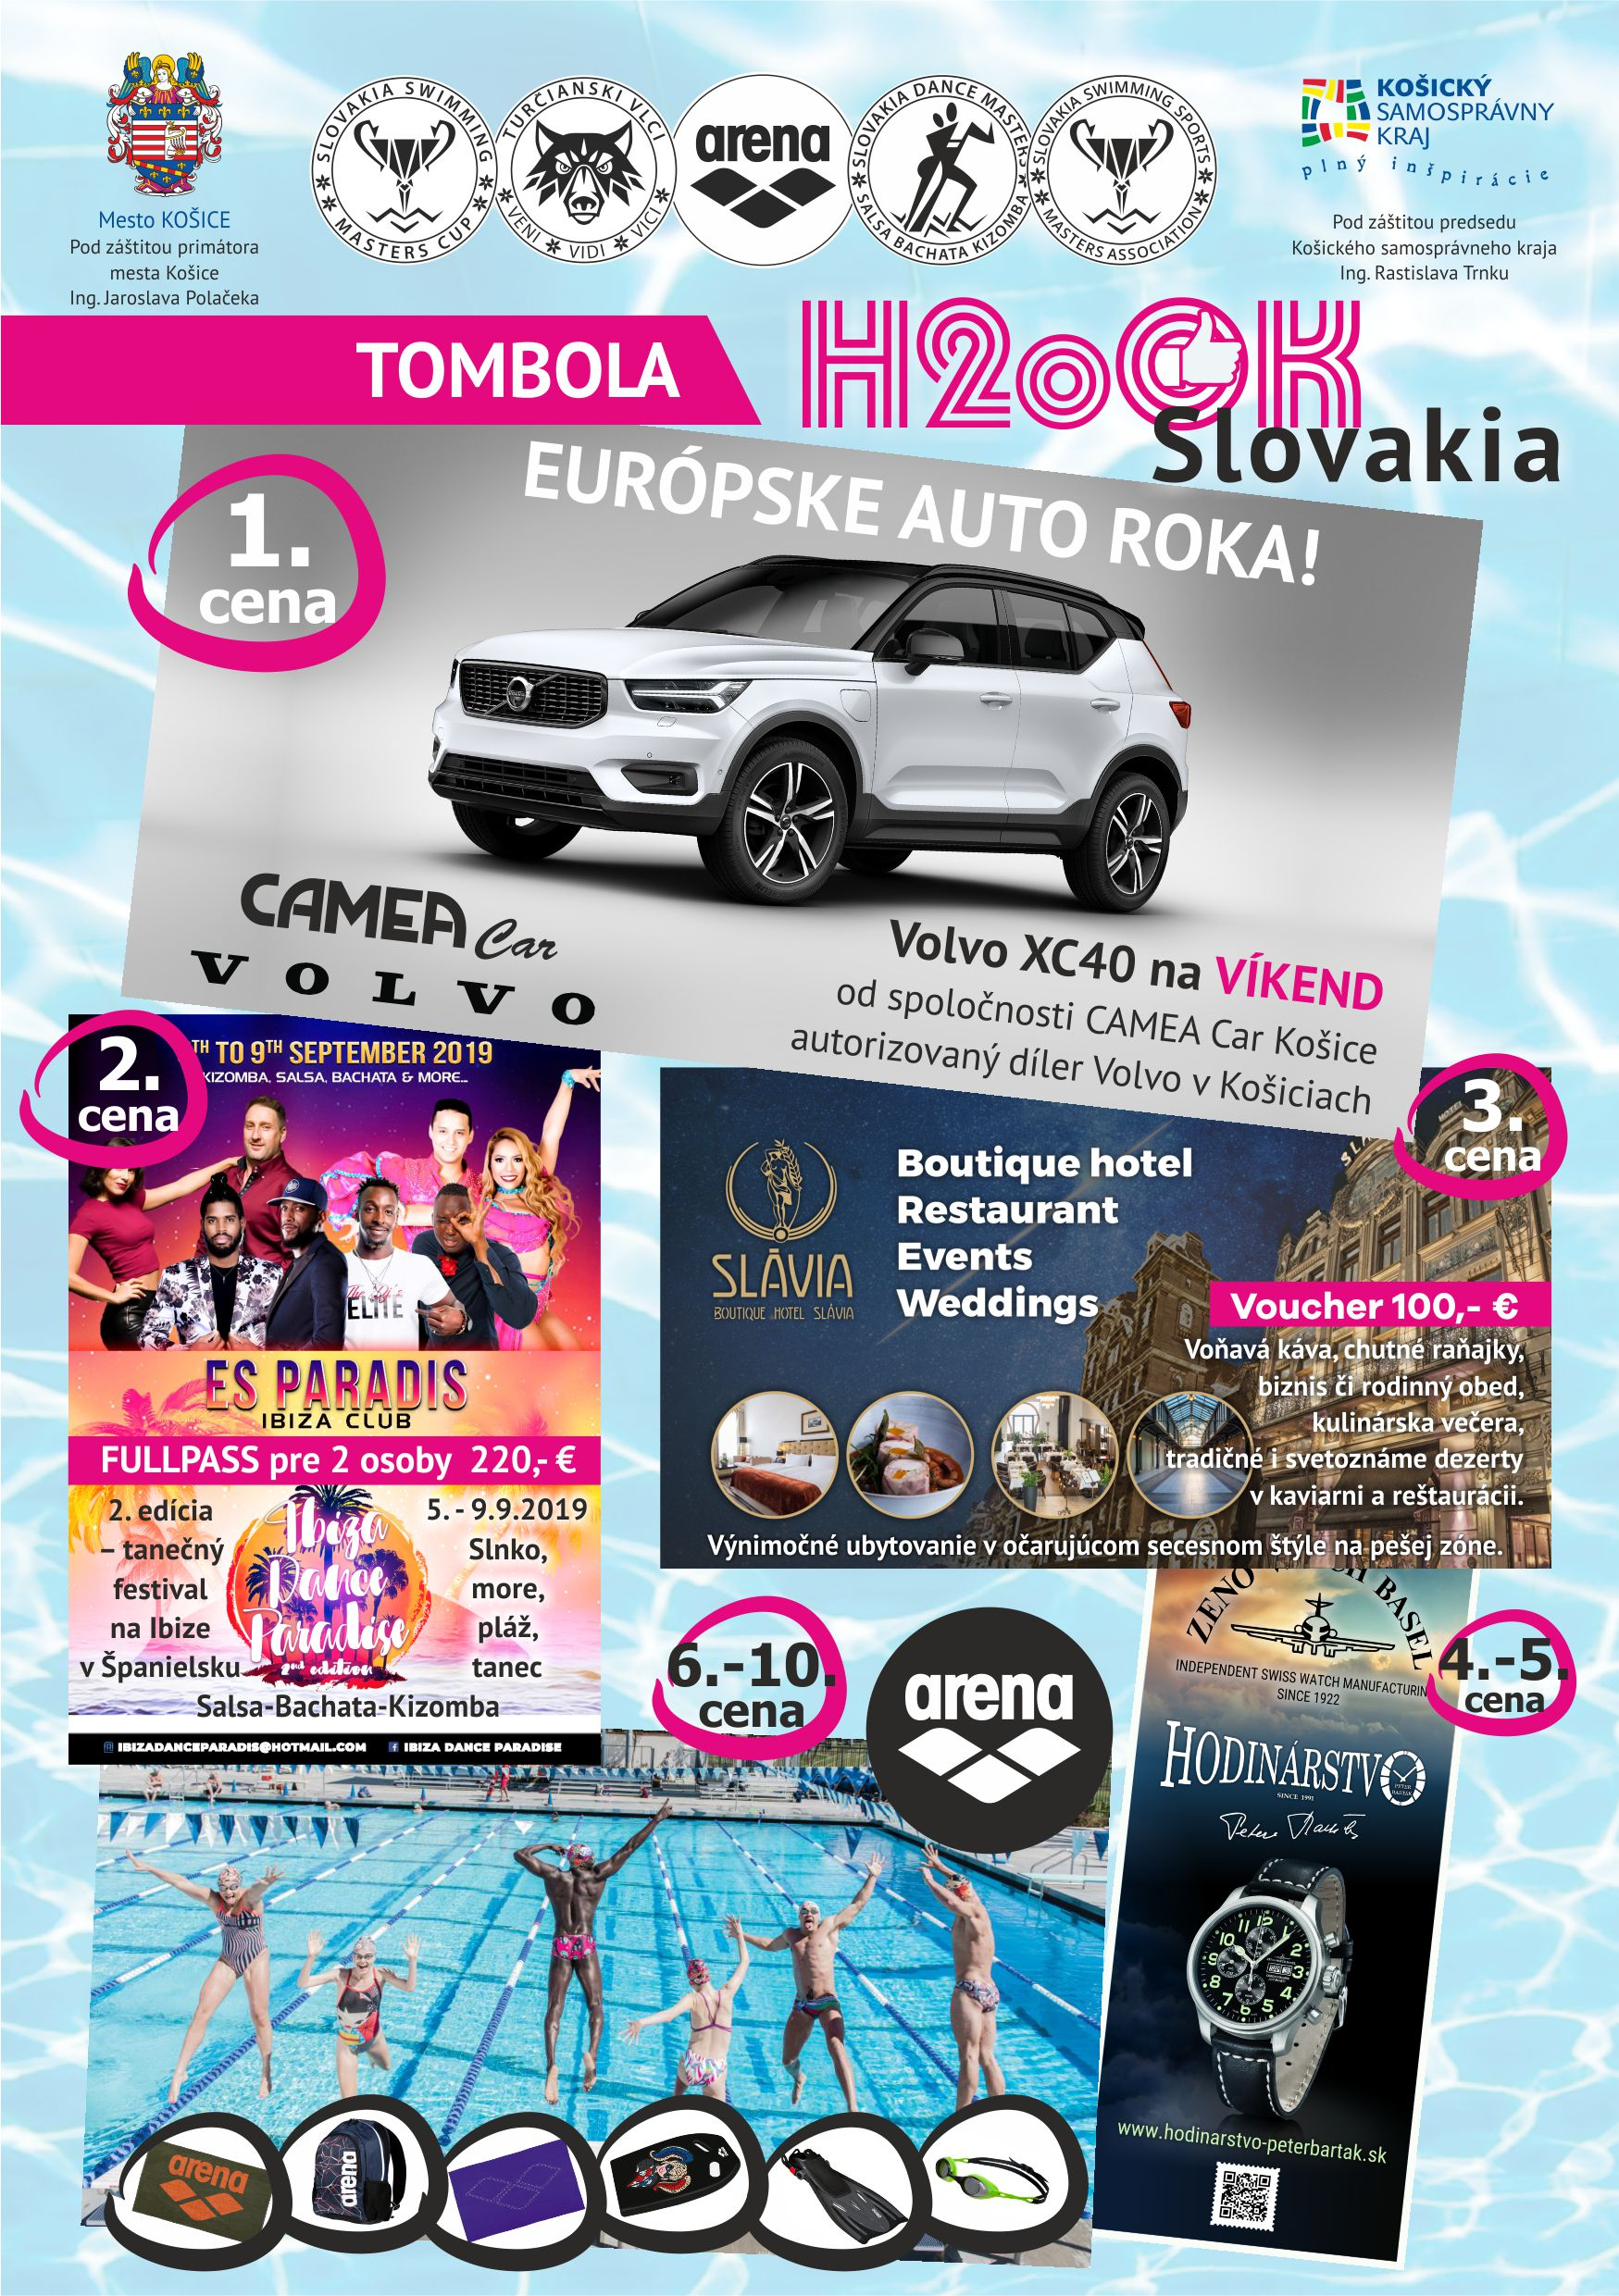 1. H2oOK SLOVAKIA - Tombola